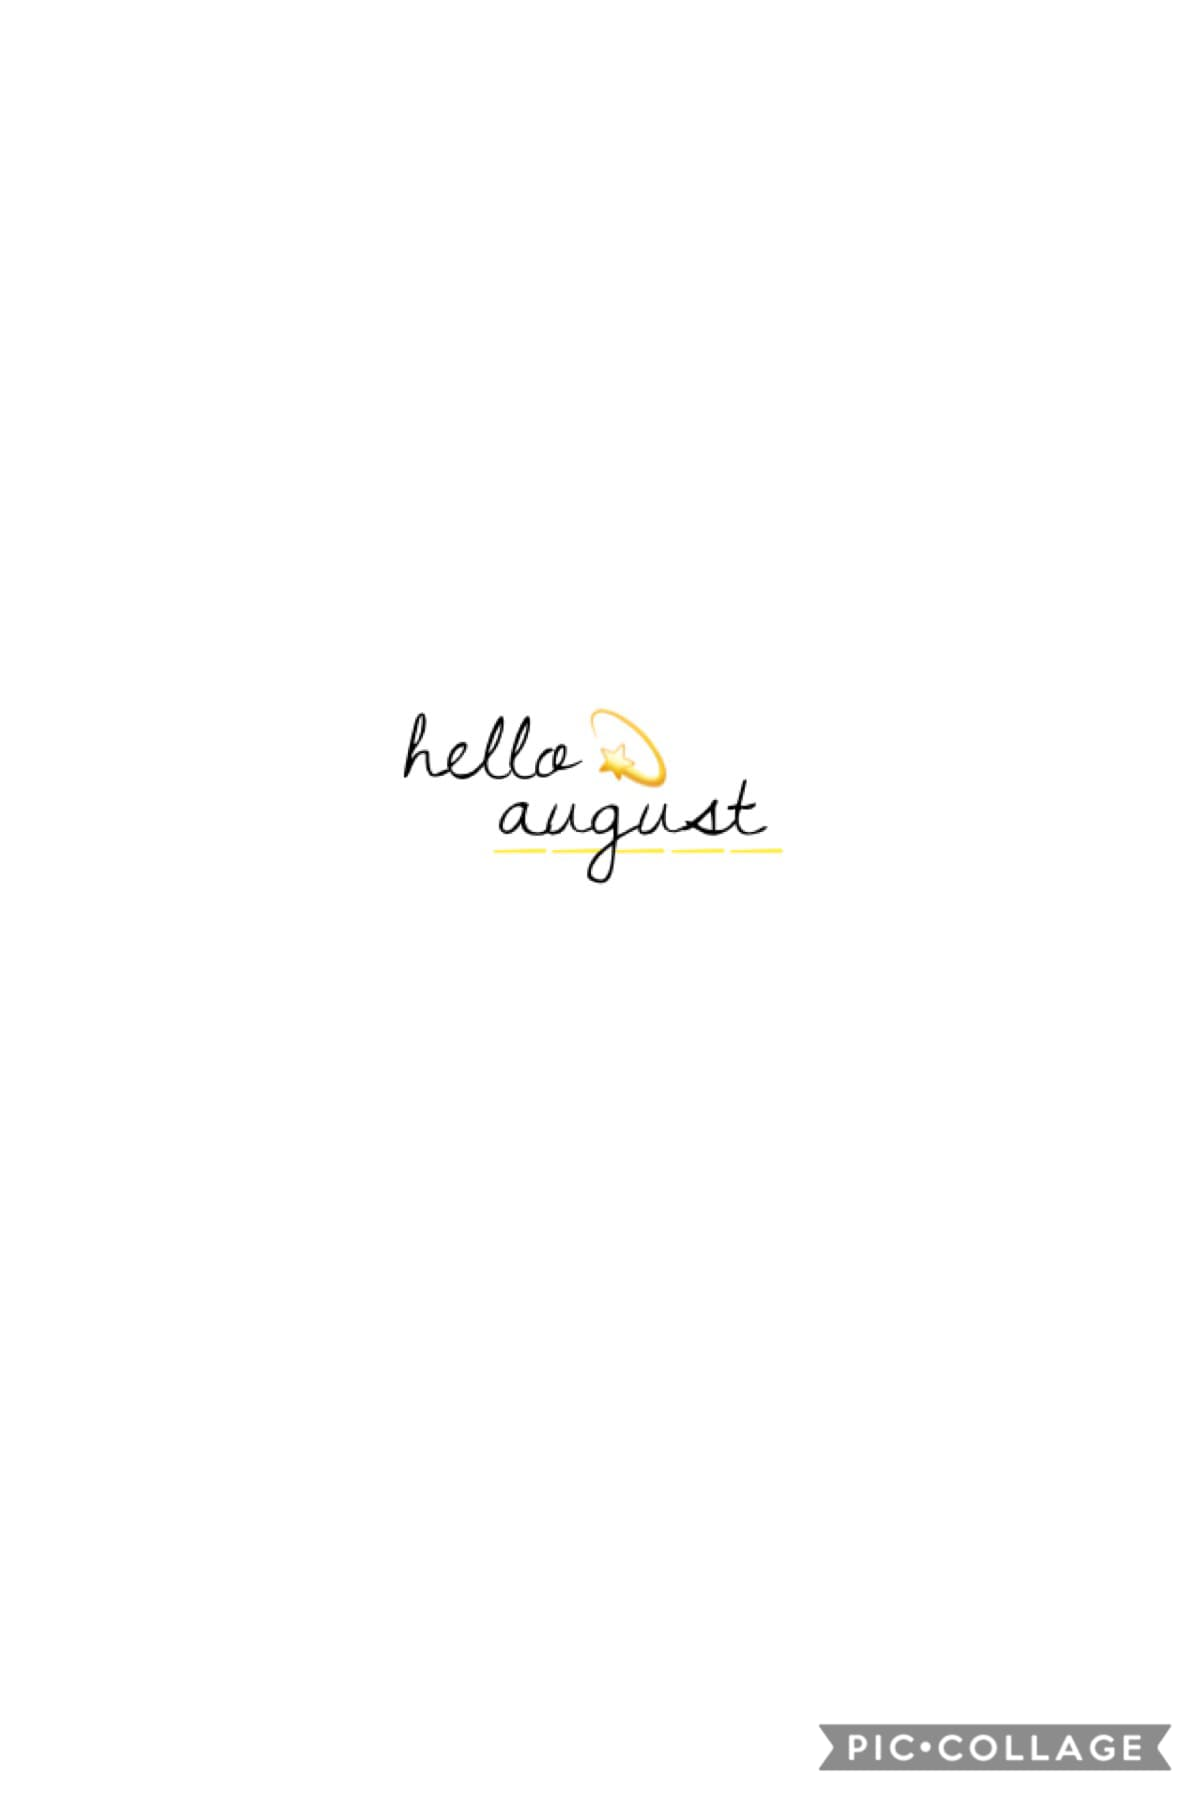 tap🤩  sry for the inactivity!!😶  I've been kinda stressed w/ school starting soon!!😵  I WISH SUMMER COULD LAST FOREVER😂  QOTD: When do u start school?  AOTD: On the 15th😬😩